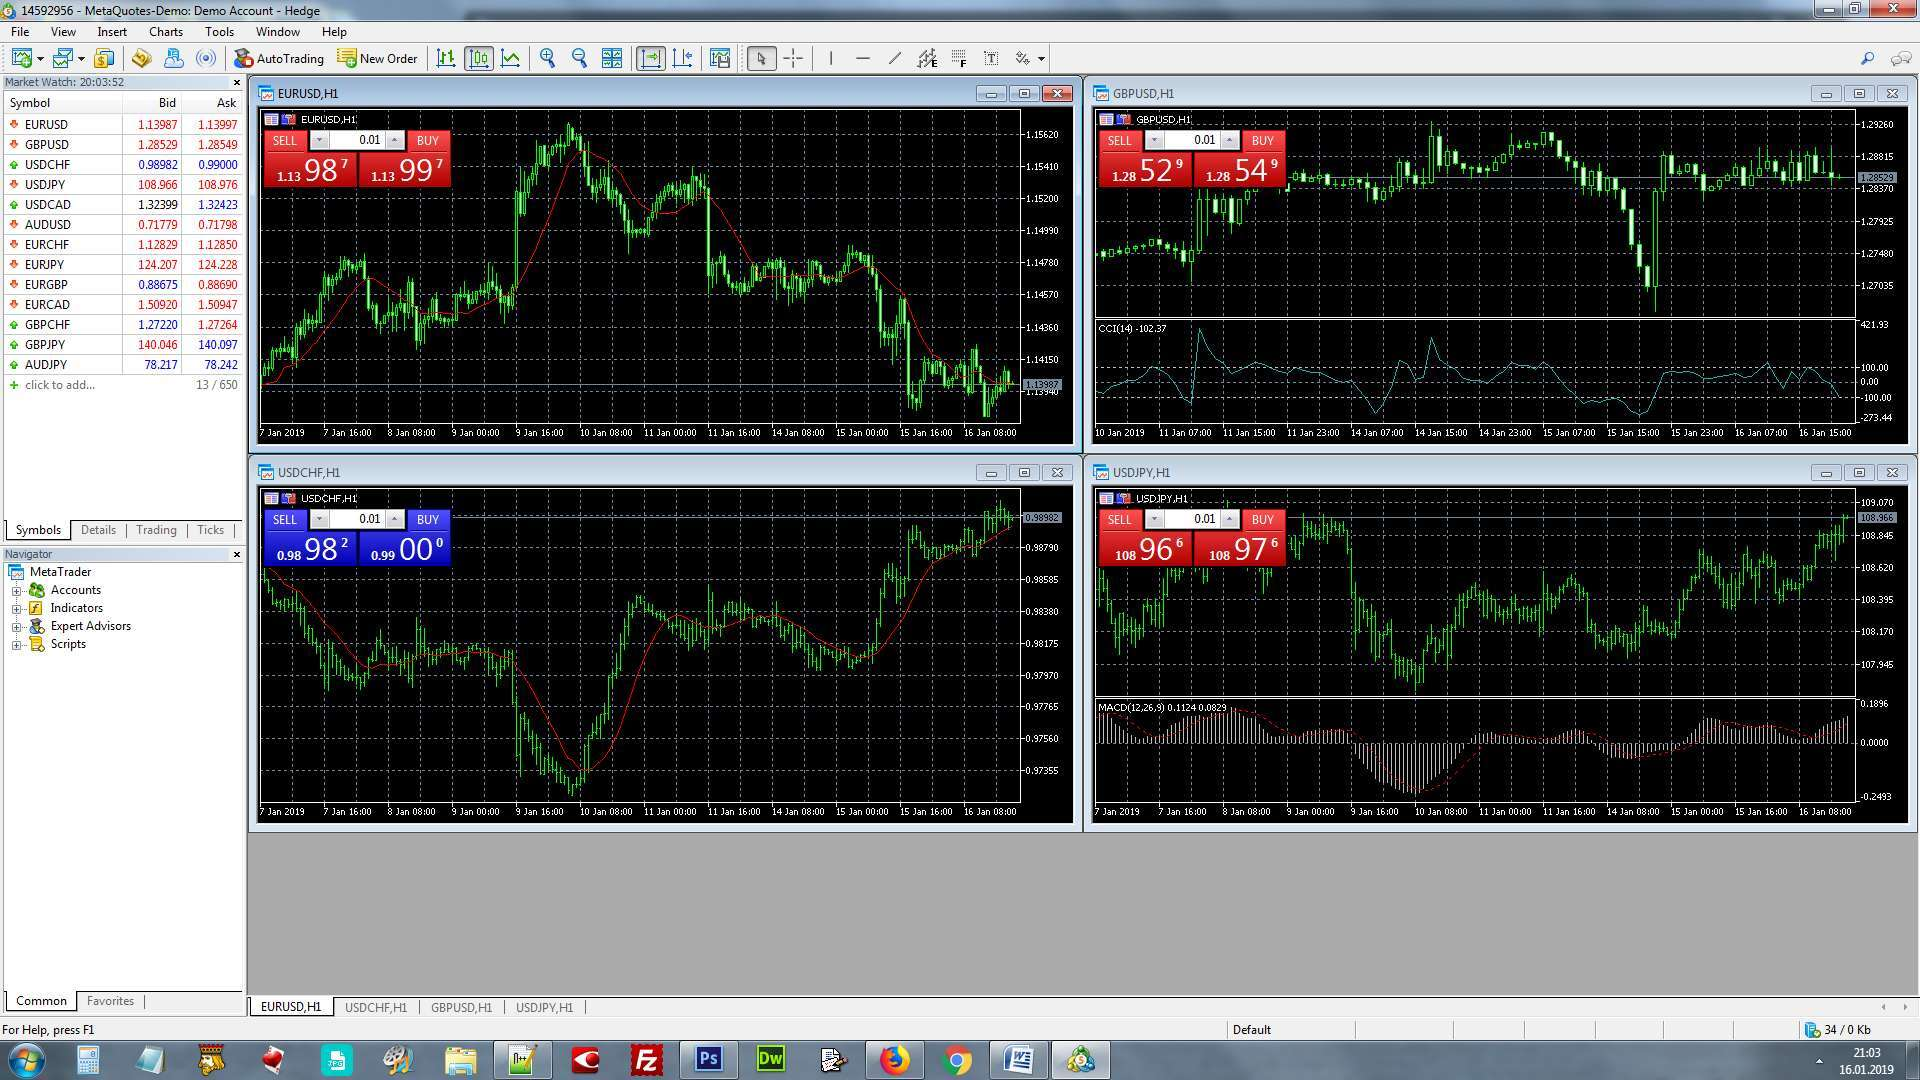 Metatrader dowload jazz investments for dummies